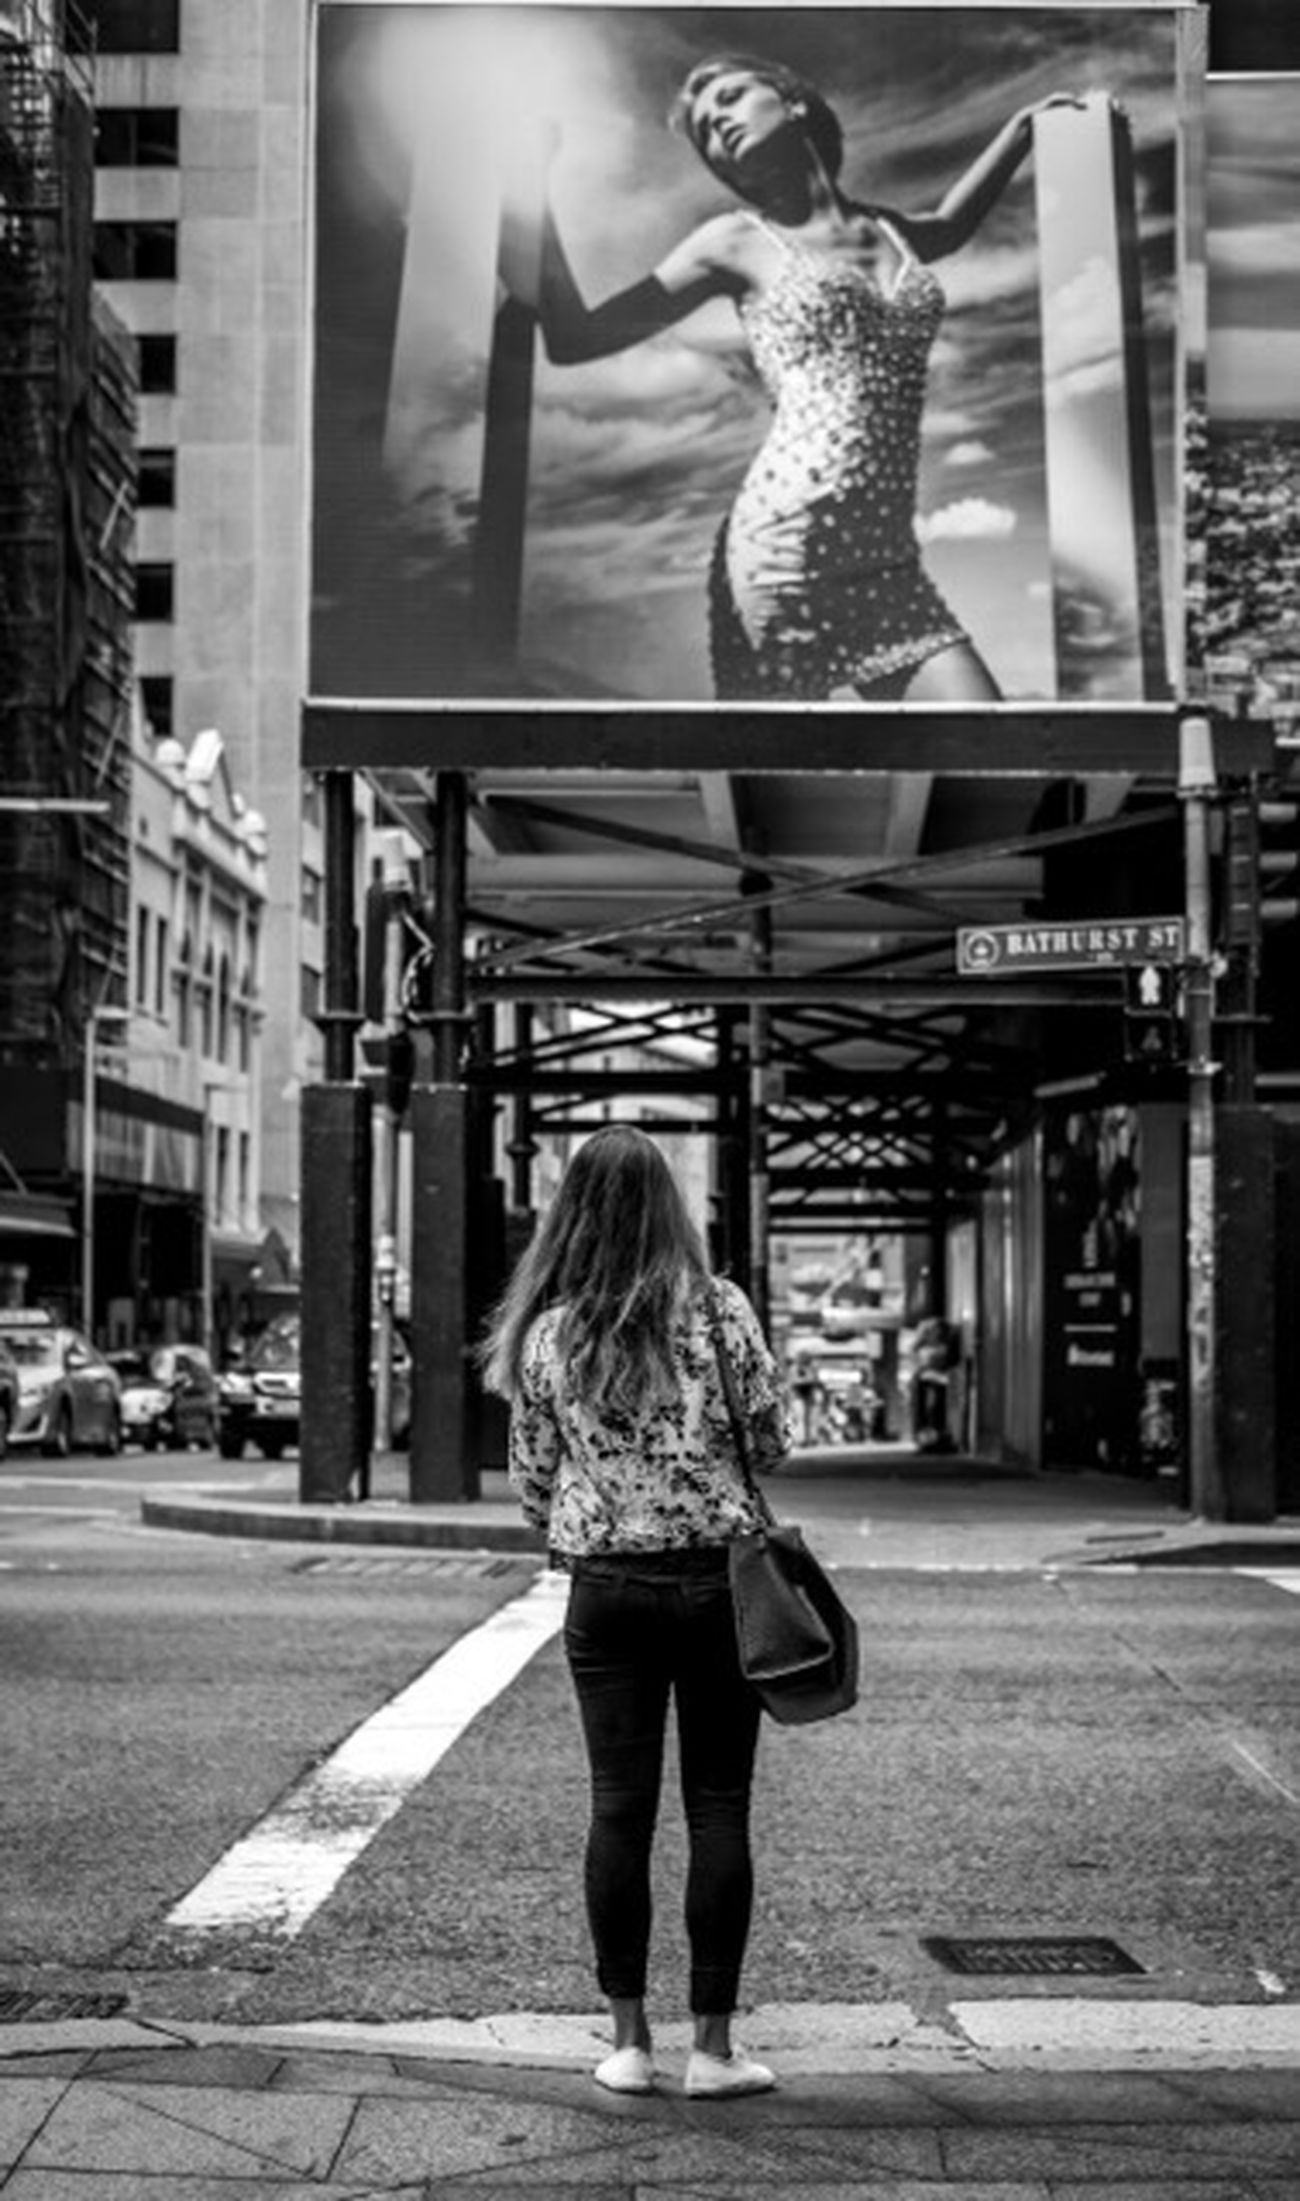 Before After Australia Sydney Street Streetphotography Streetphoto_bw Street Fashion Street Style Fashion Style Urban City People Candid Billboard Woman Xpro2 Fujixpro2 FujifilmXPro2 Xf35mmf2 Fujiusers